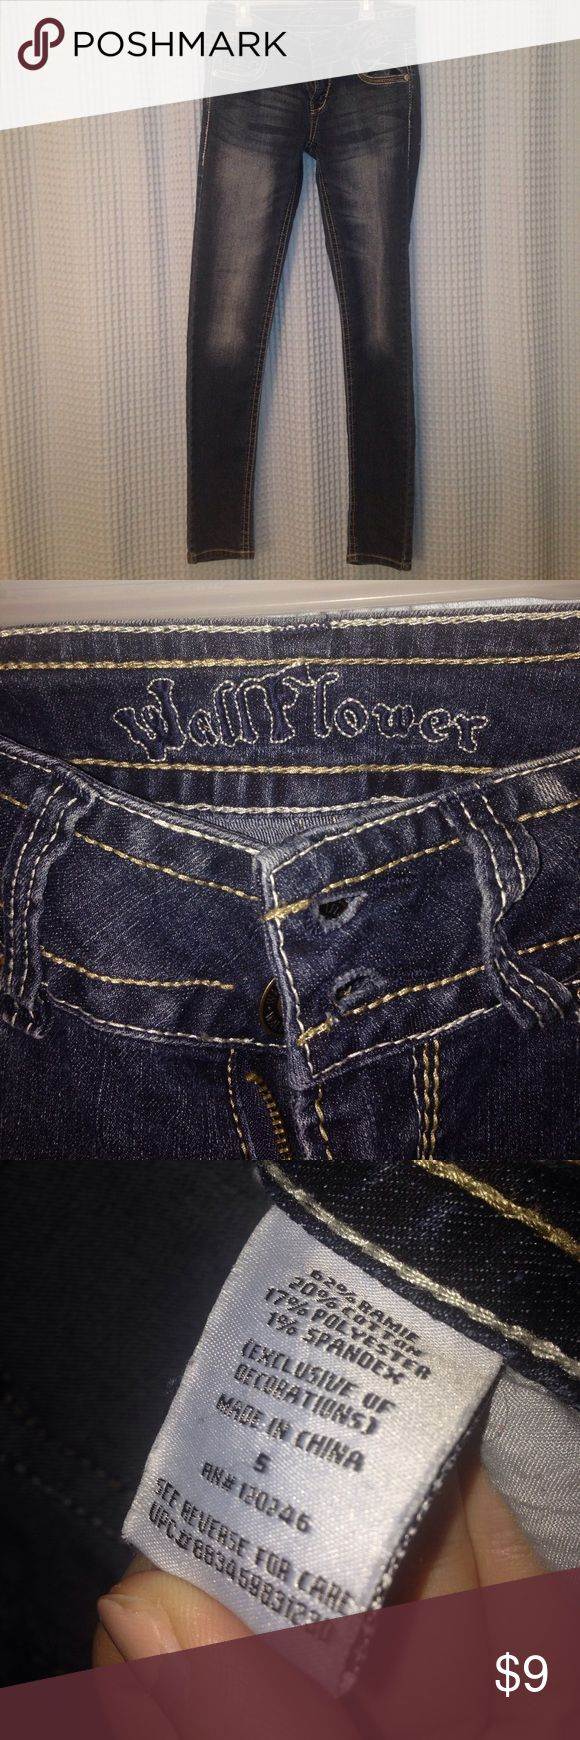 WALLFLOWER jeans Worn once, almost perfect condition. Size 5 Wallflower Jeans Straight Leg